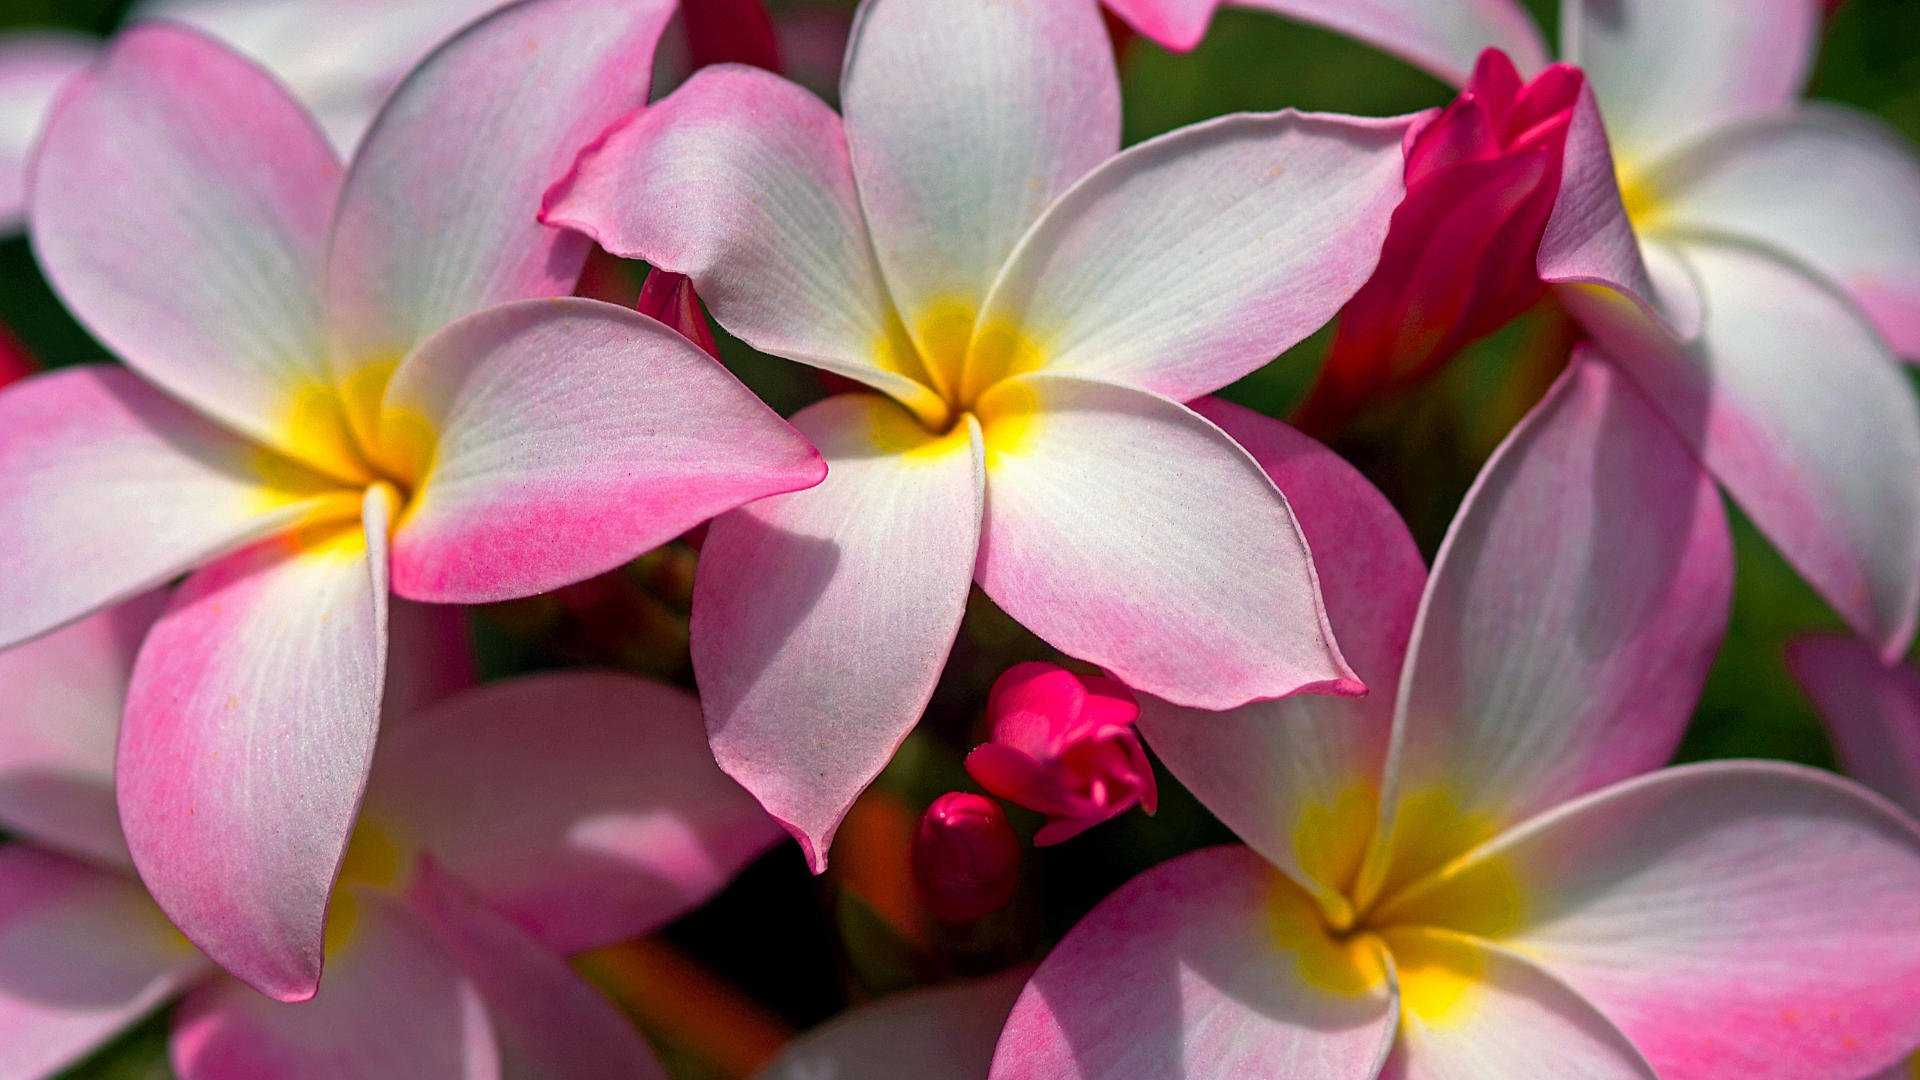 Hawaiian Flowers Wallpaper HD